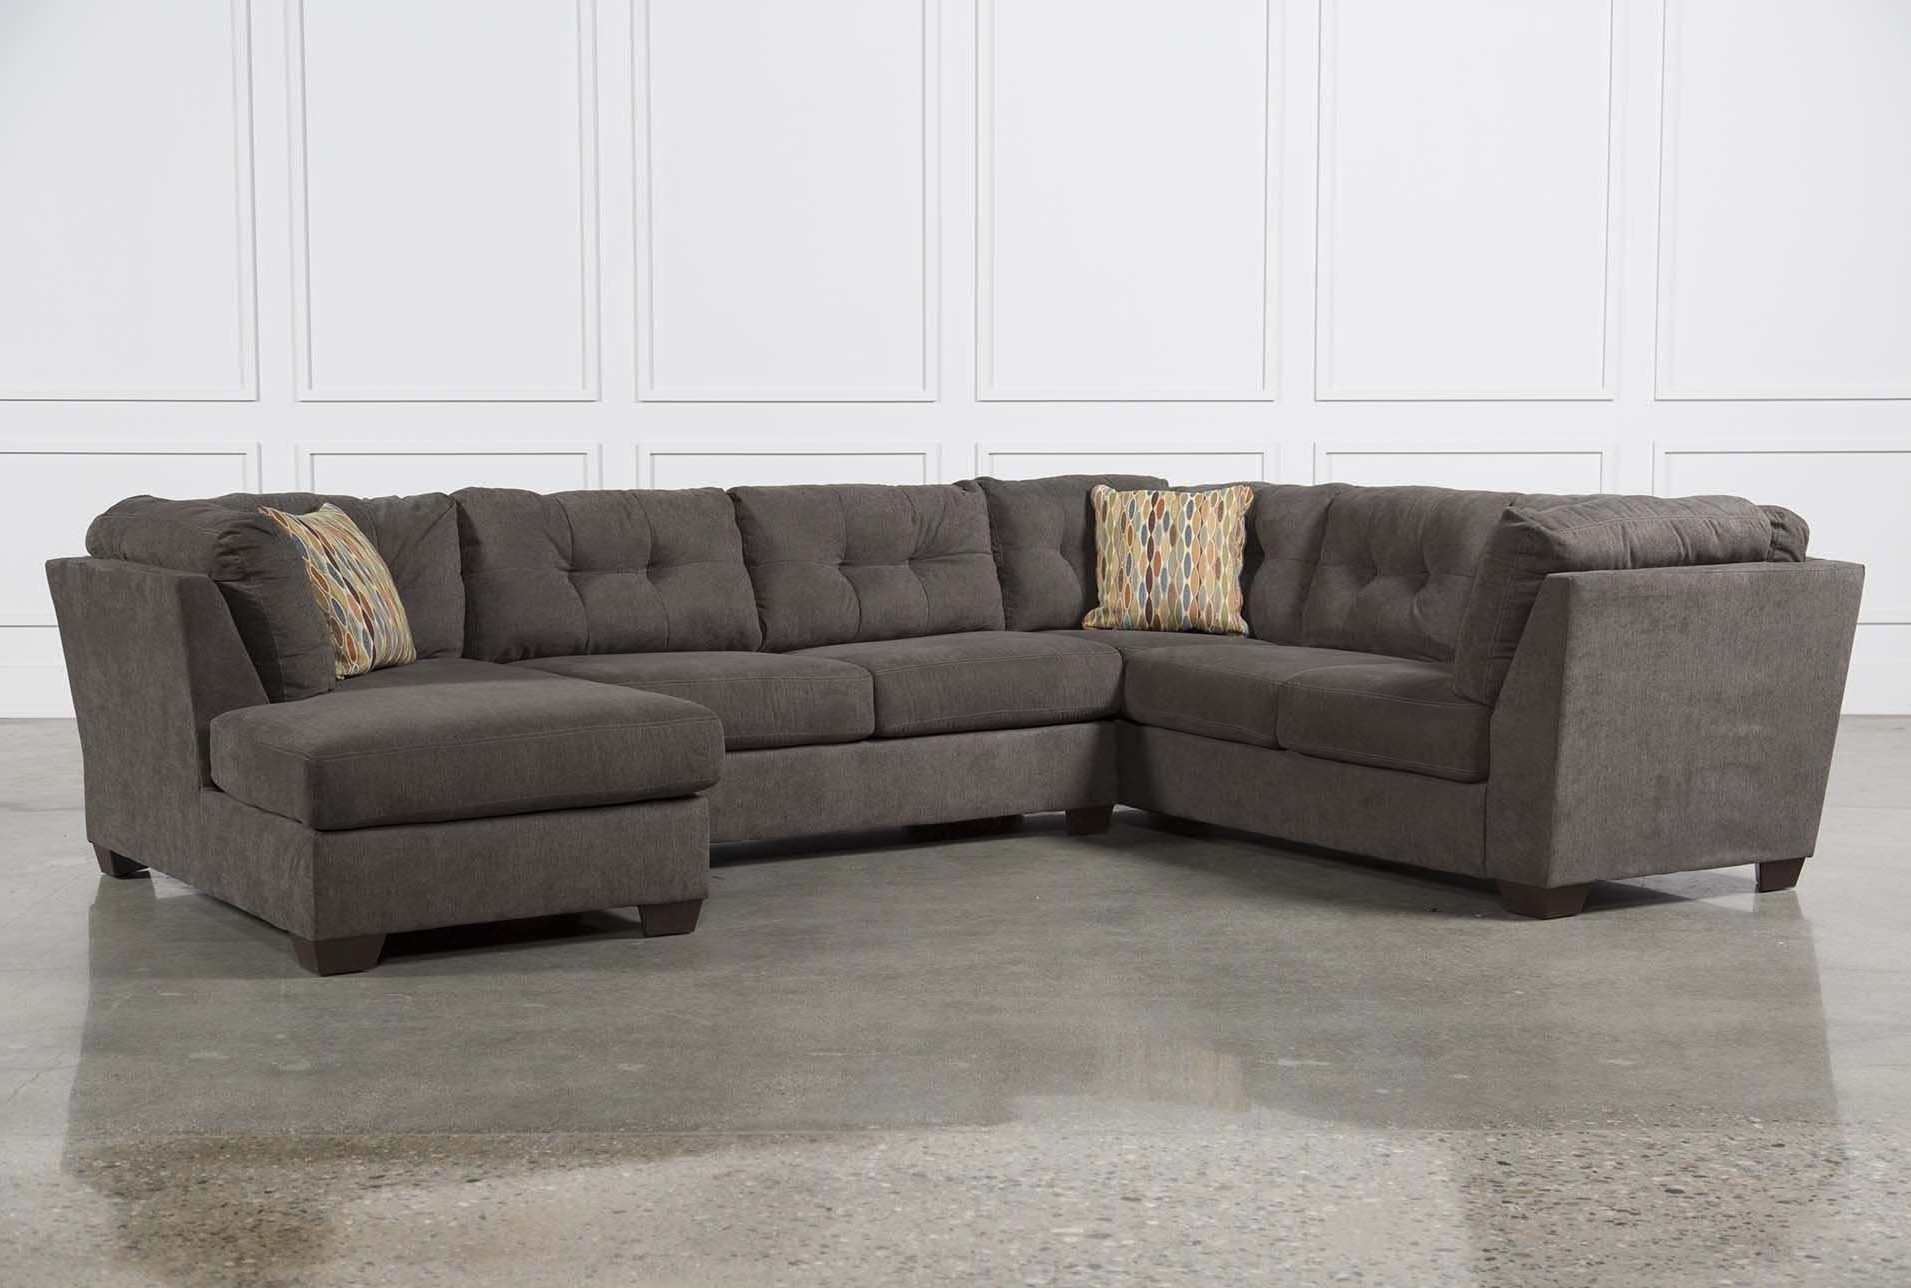 Furniture: Comfortable Deep Seat Sectional For Your Living Room Throughout Most Recently Released Grey Sectionals With Chaise (View 6 of 15)